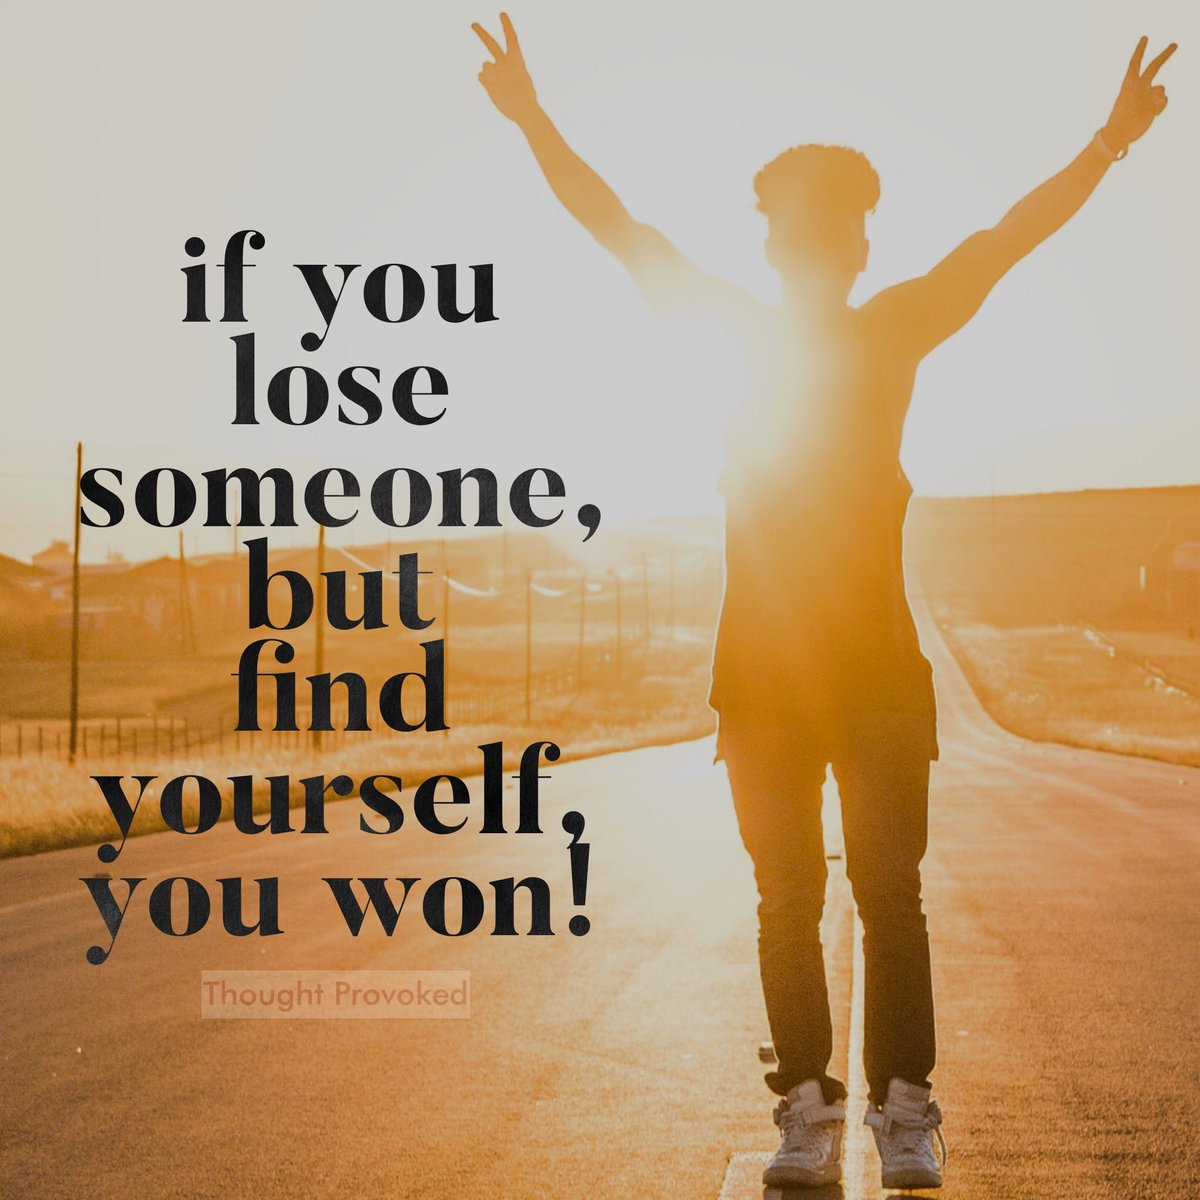 If you lose someone, but find yourself, you won!  #TuesdayThoughts #IQRTG #TuesdayMotivation #quotes #TuesdayMorning #relationships<br>http://pic.twitter.com/SvV0VarYTW